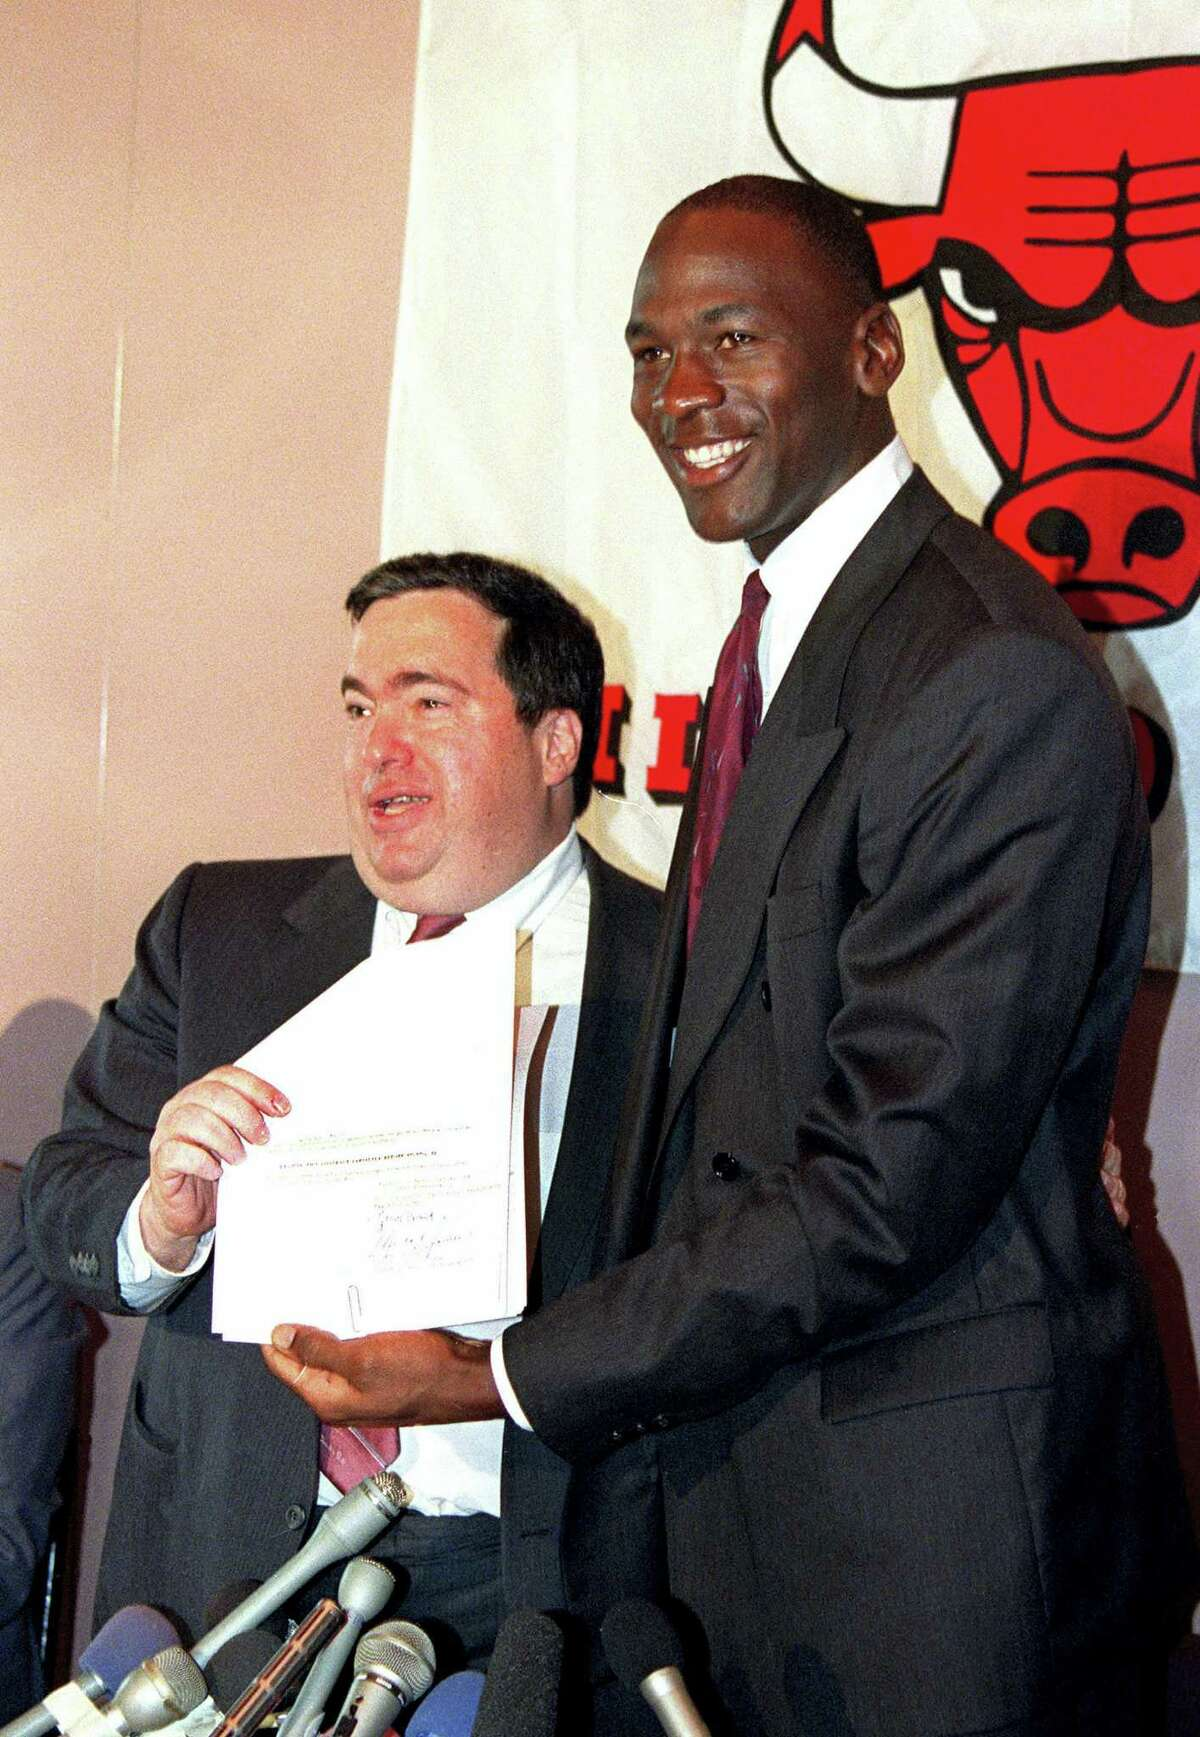 In this Sept. 21, 1988, file photo, Chicago Bulls' Michael Jordan, right, is all smiles after he signed a new contract with the NBA basketball team as general manager Jerry Krause looks on during a news conference in Chicago, Ill. Krause, the executive behind the Bulls' six NBA titles, has died, the team announced Tuesday, March 21, 2017. He was 77.